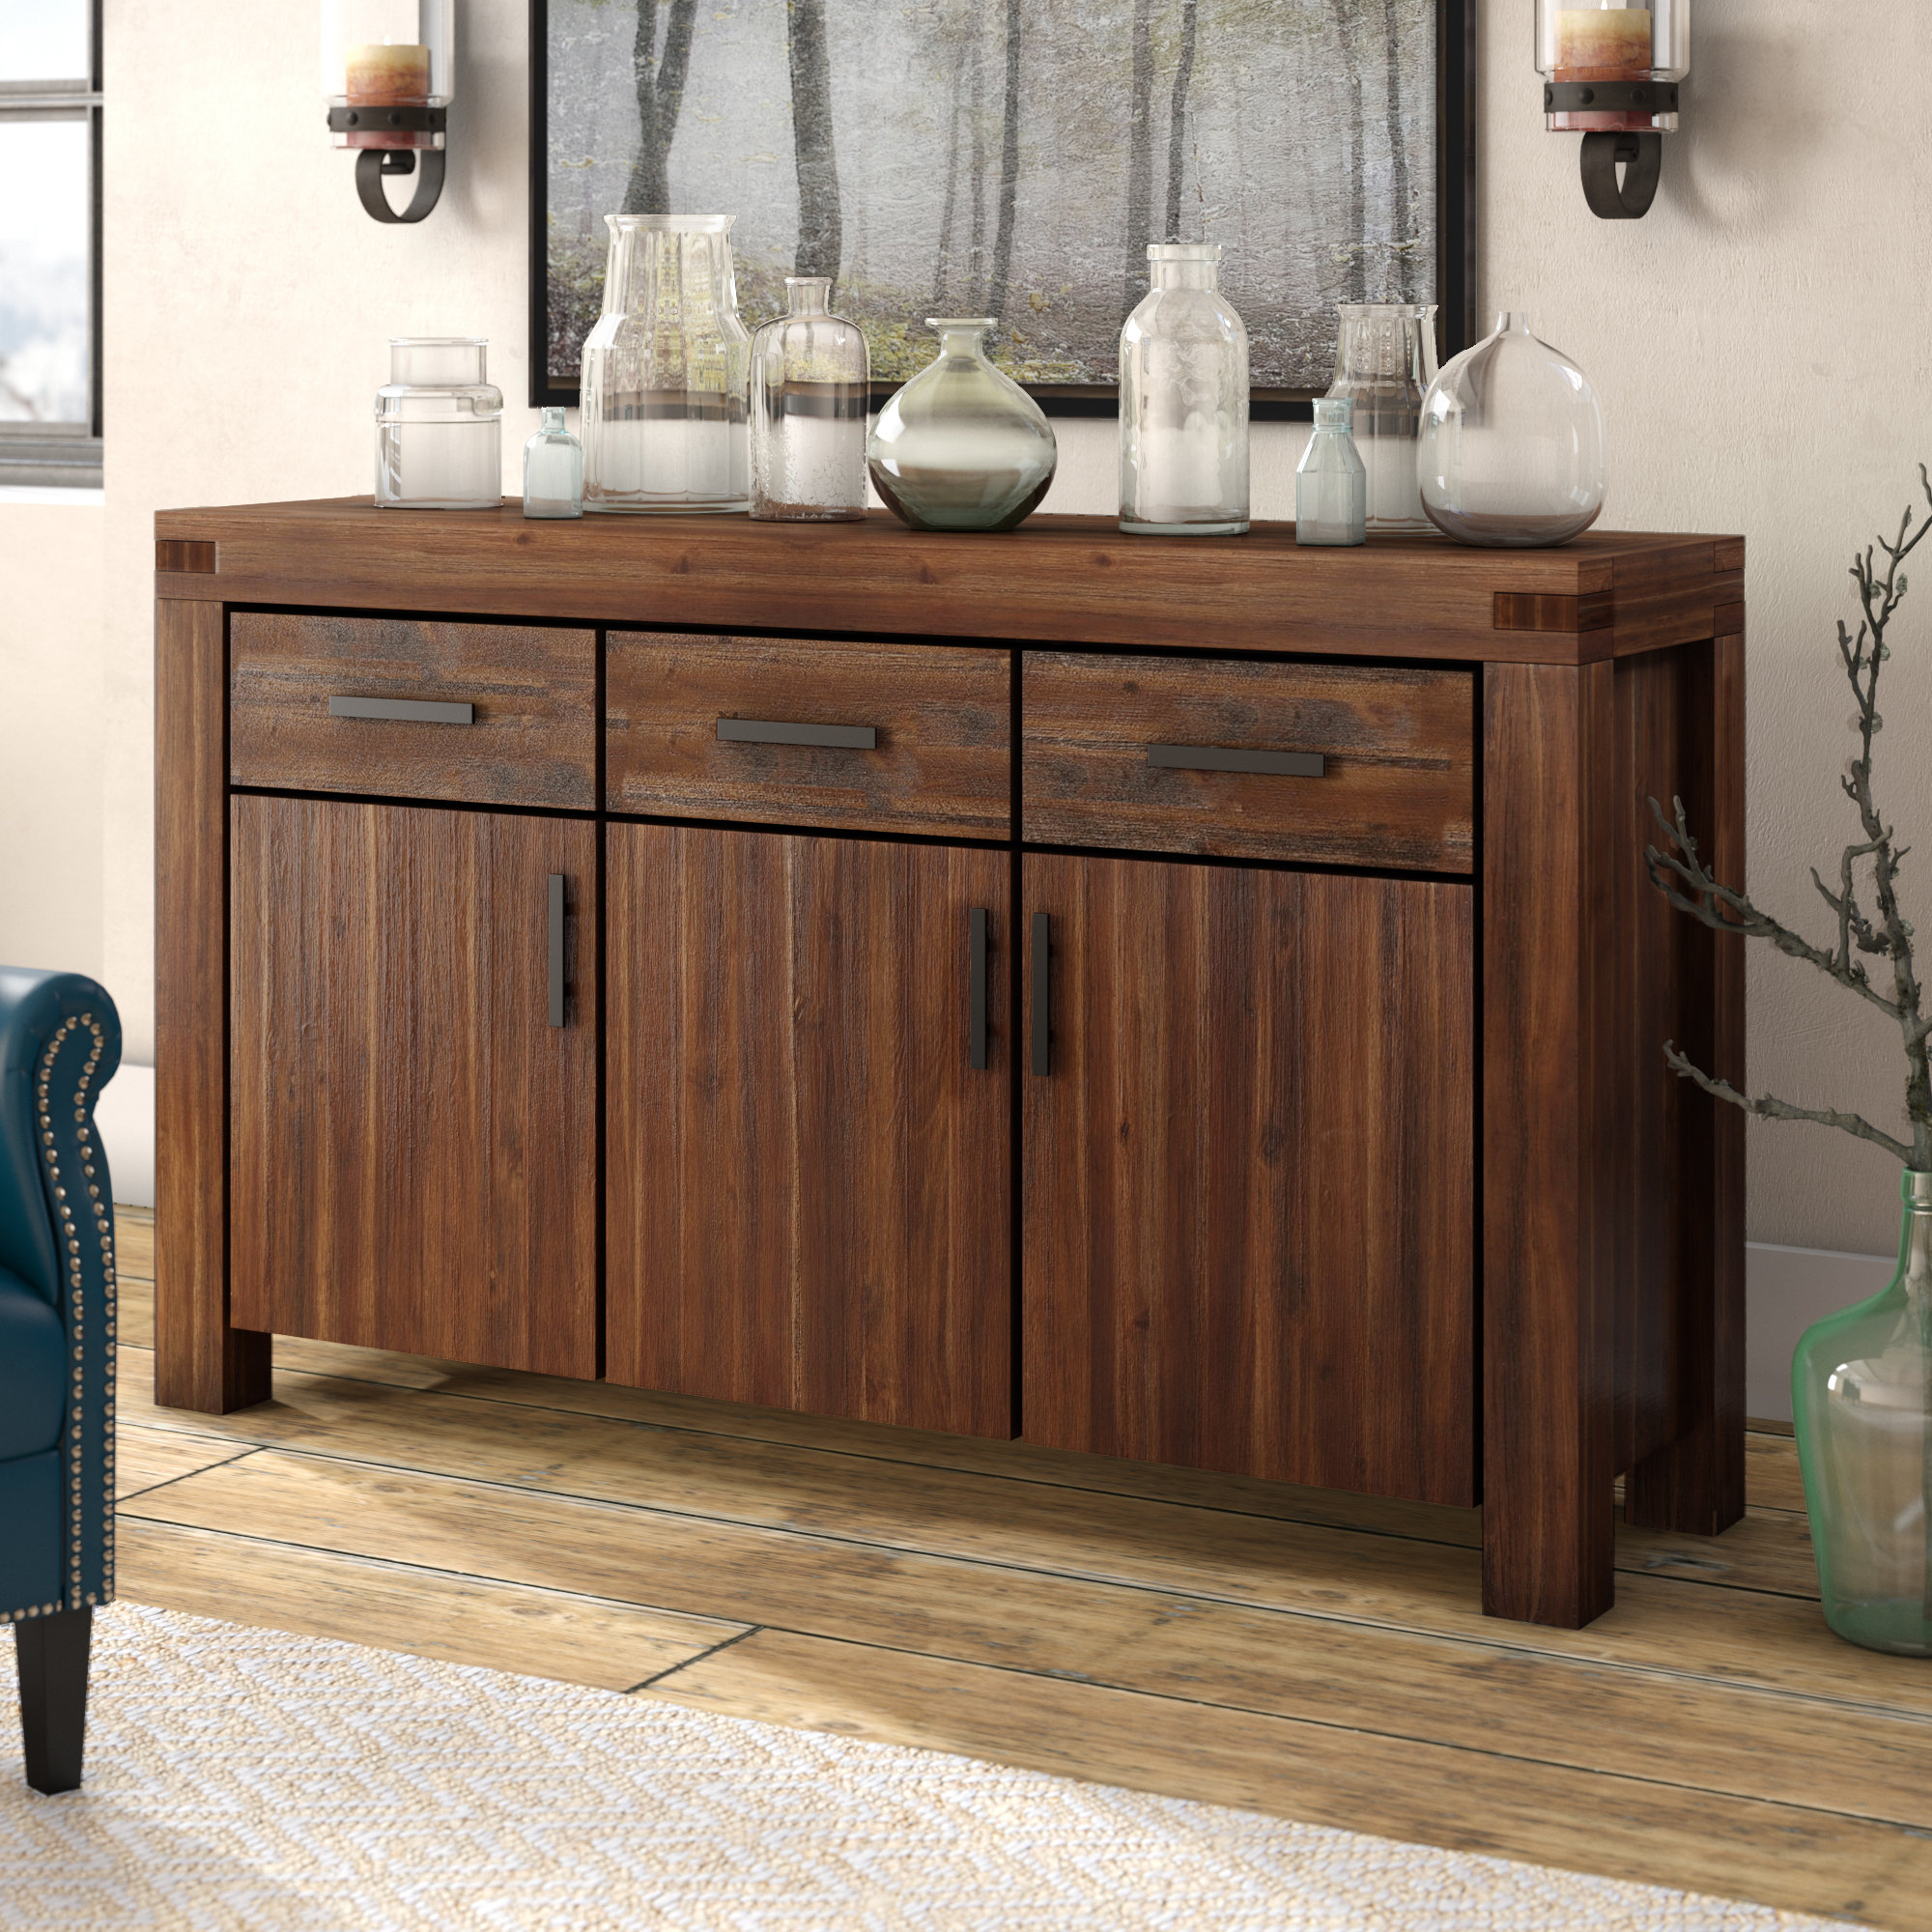 Vintage Credenza You'll Love In 2019 | Wayfair with Candide Wood Credenzas (Image 30 of 30)